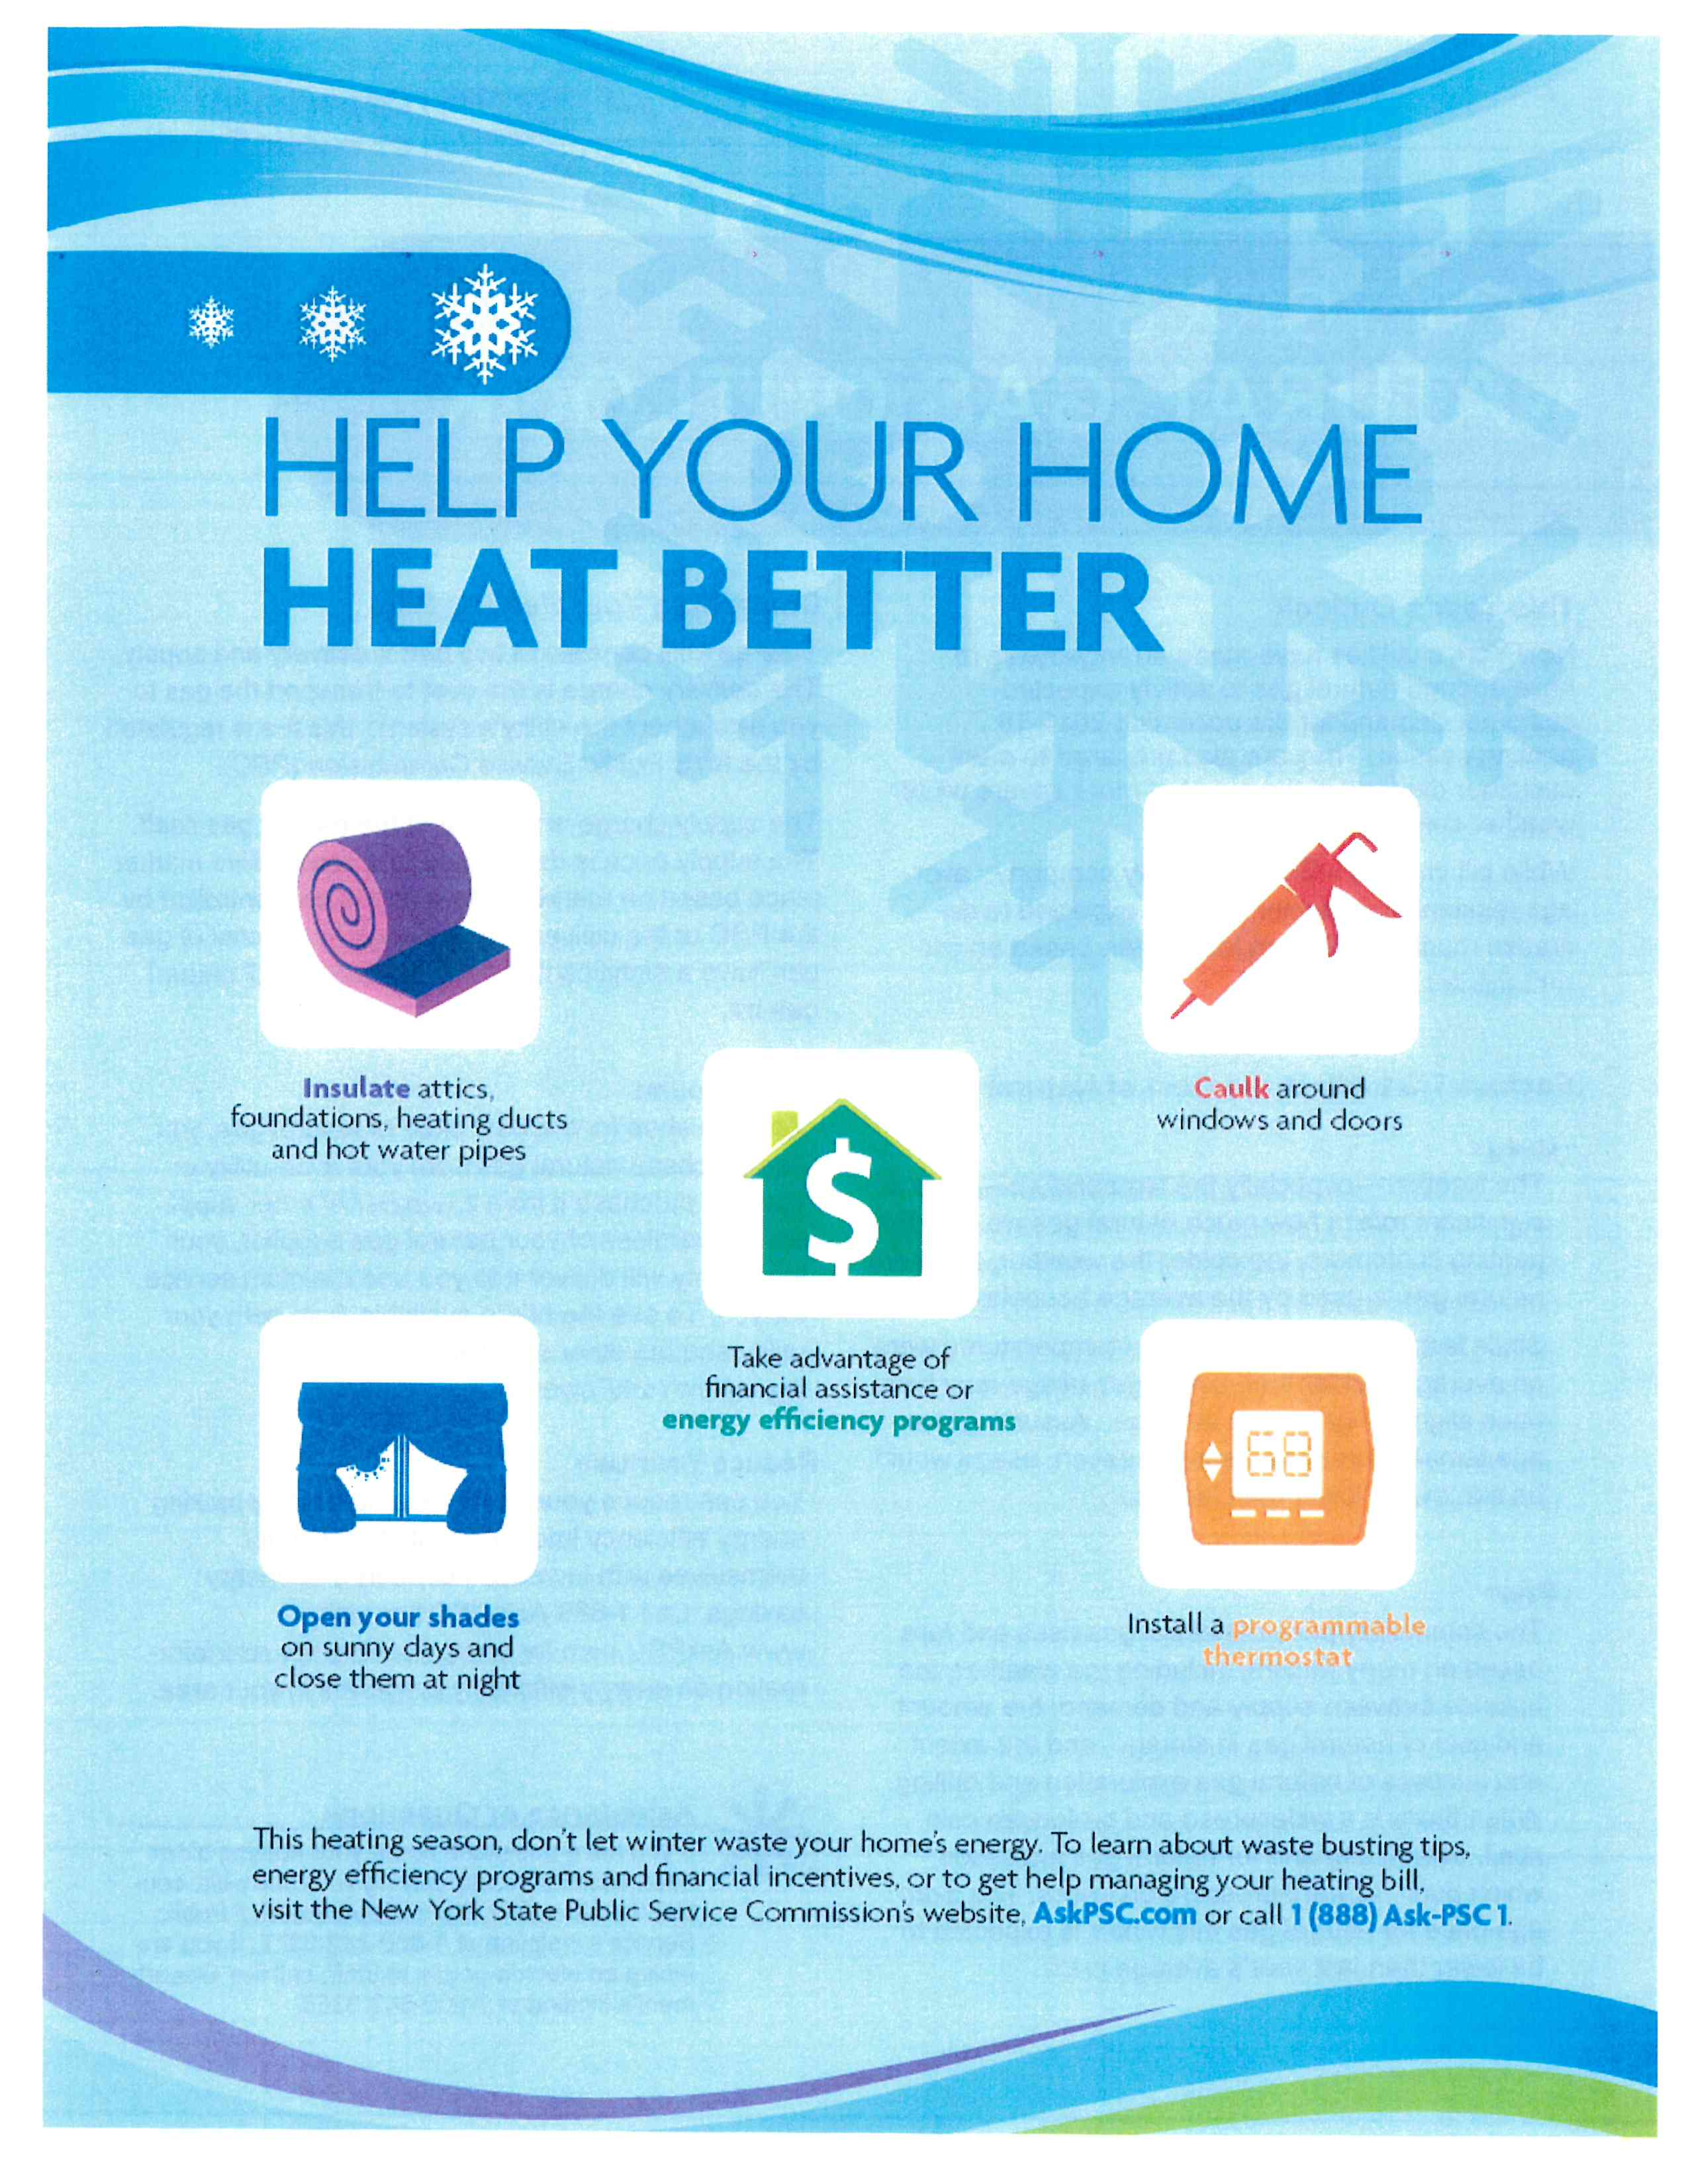 Heat Your Home Better pg1